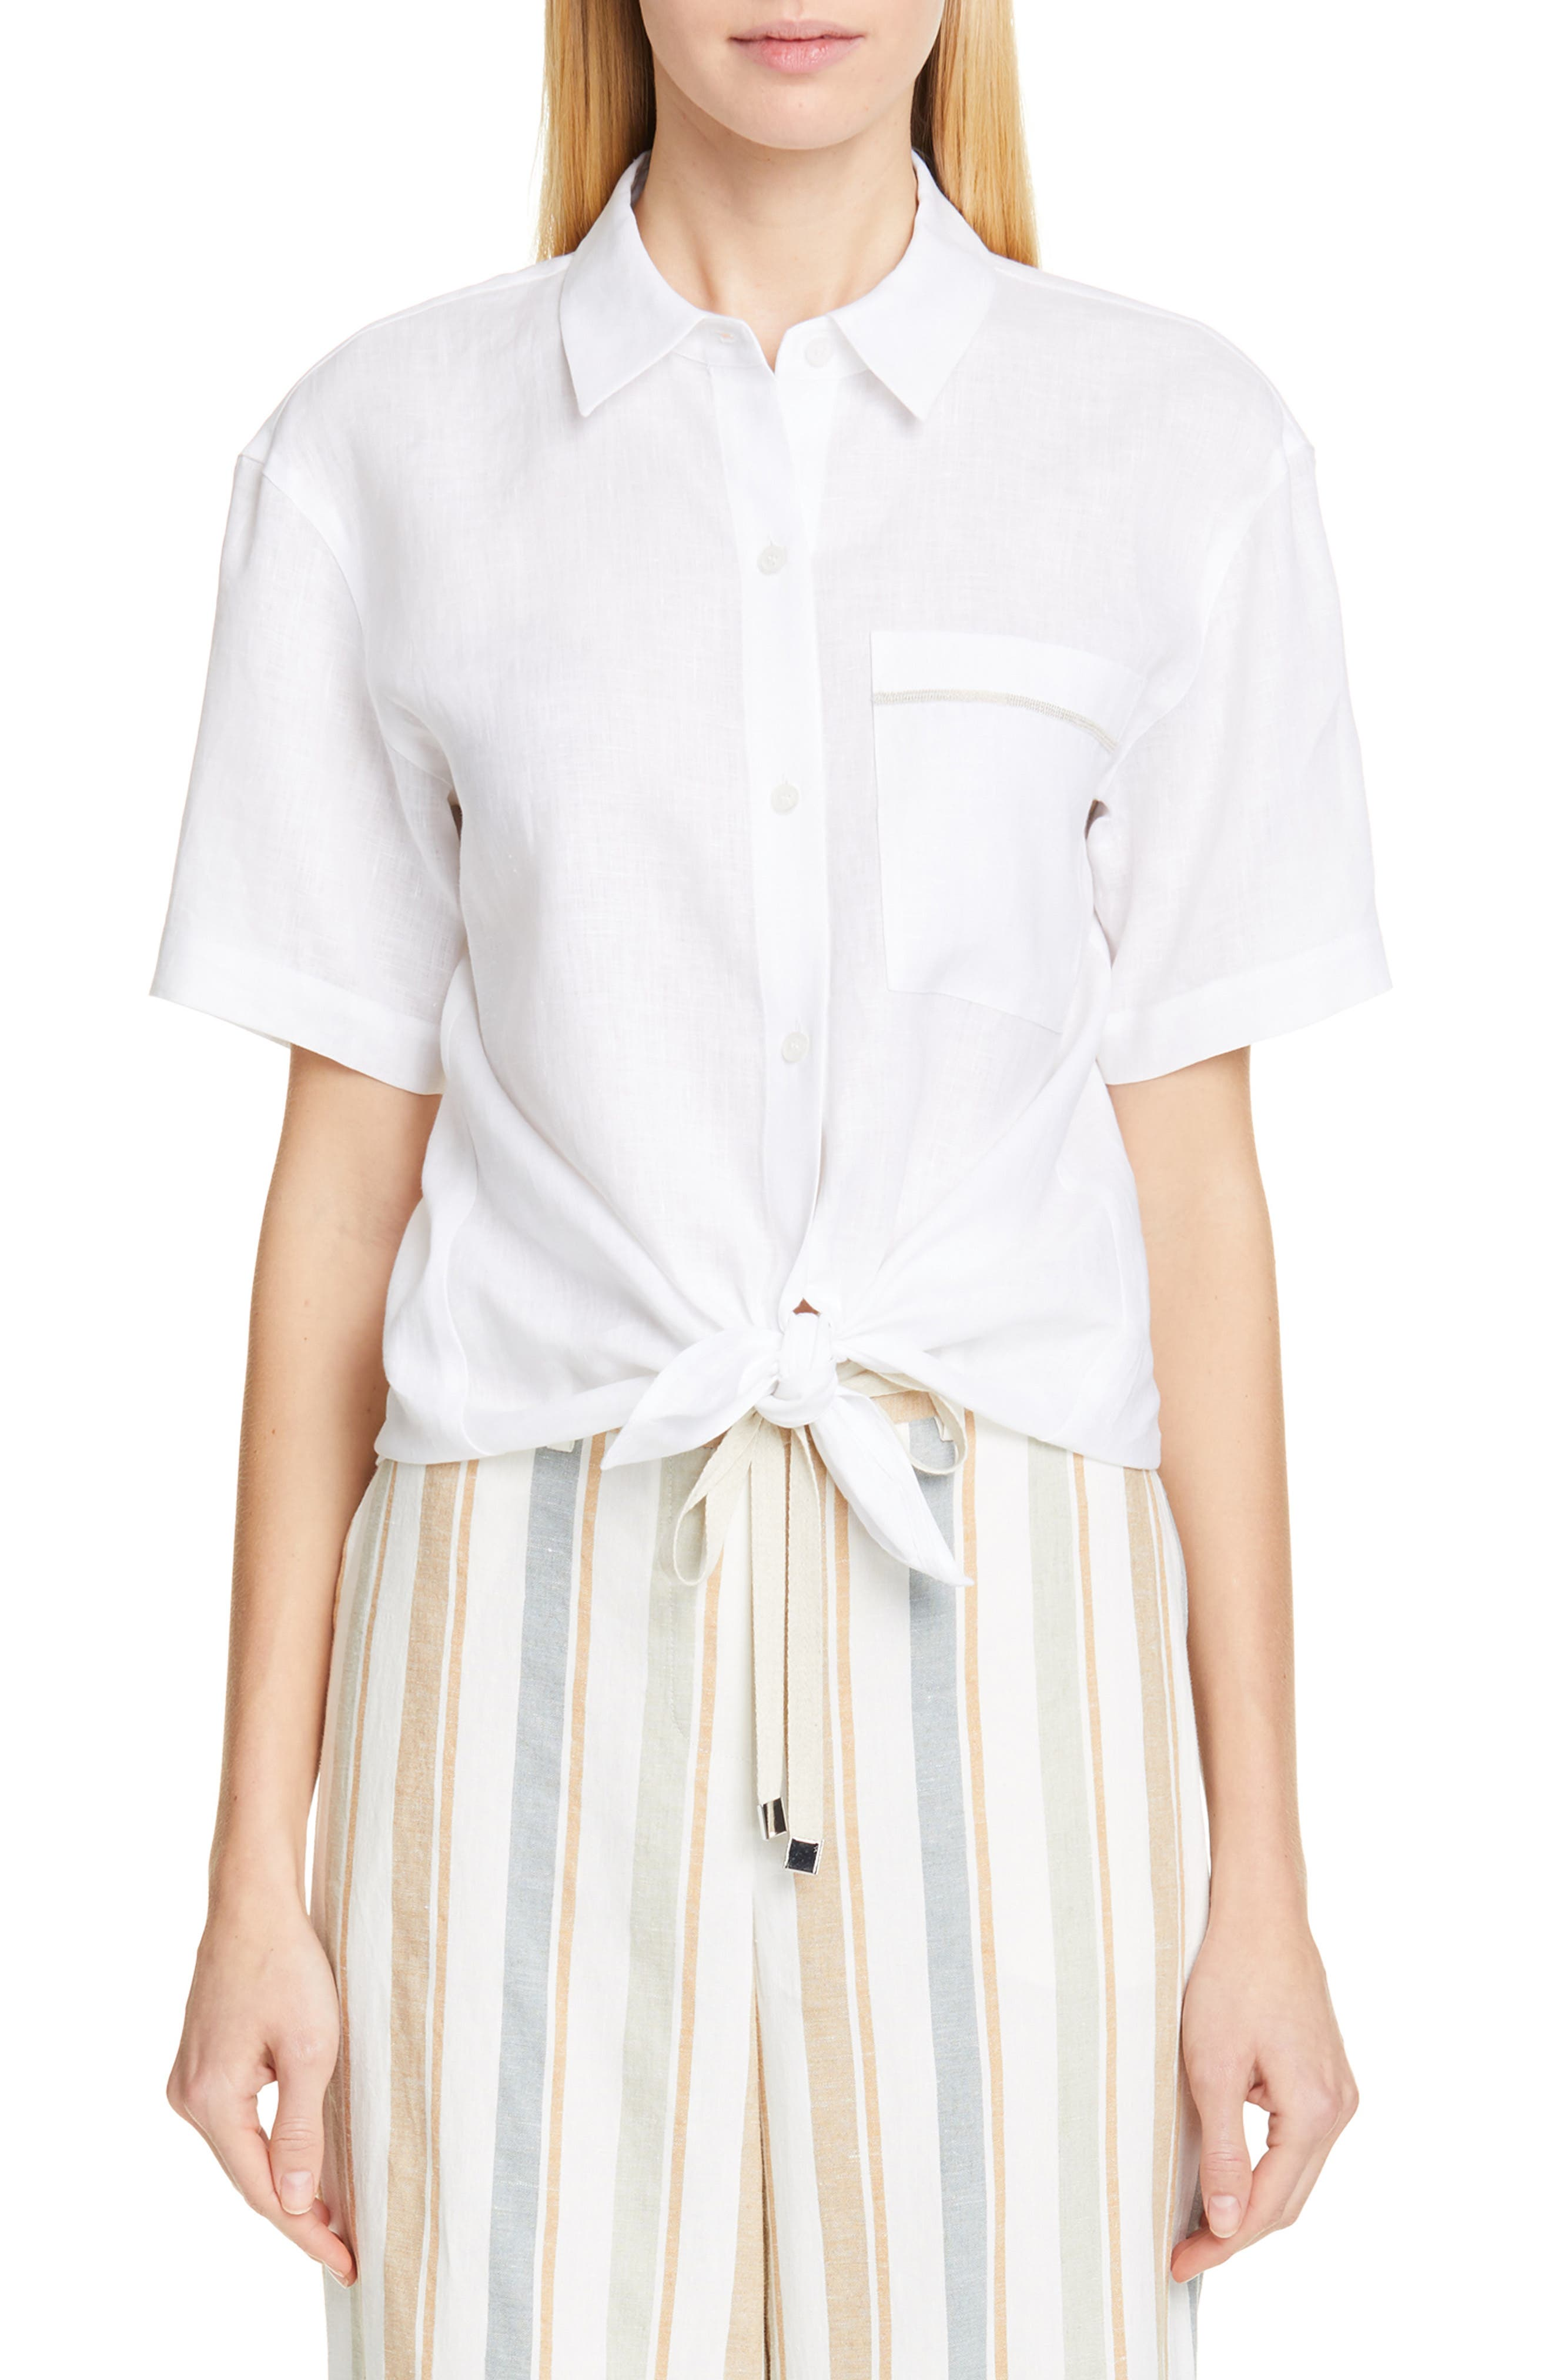 LAFAYETTE 148 NEW YORK, Justice Linen Shirt, Main thumbnail 1, color, WHITE